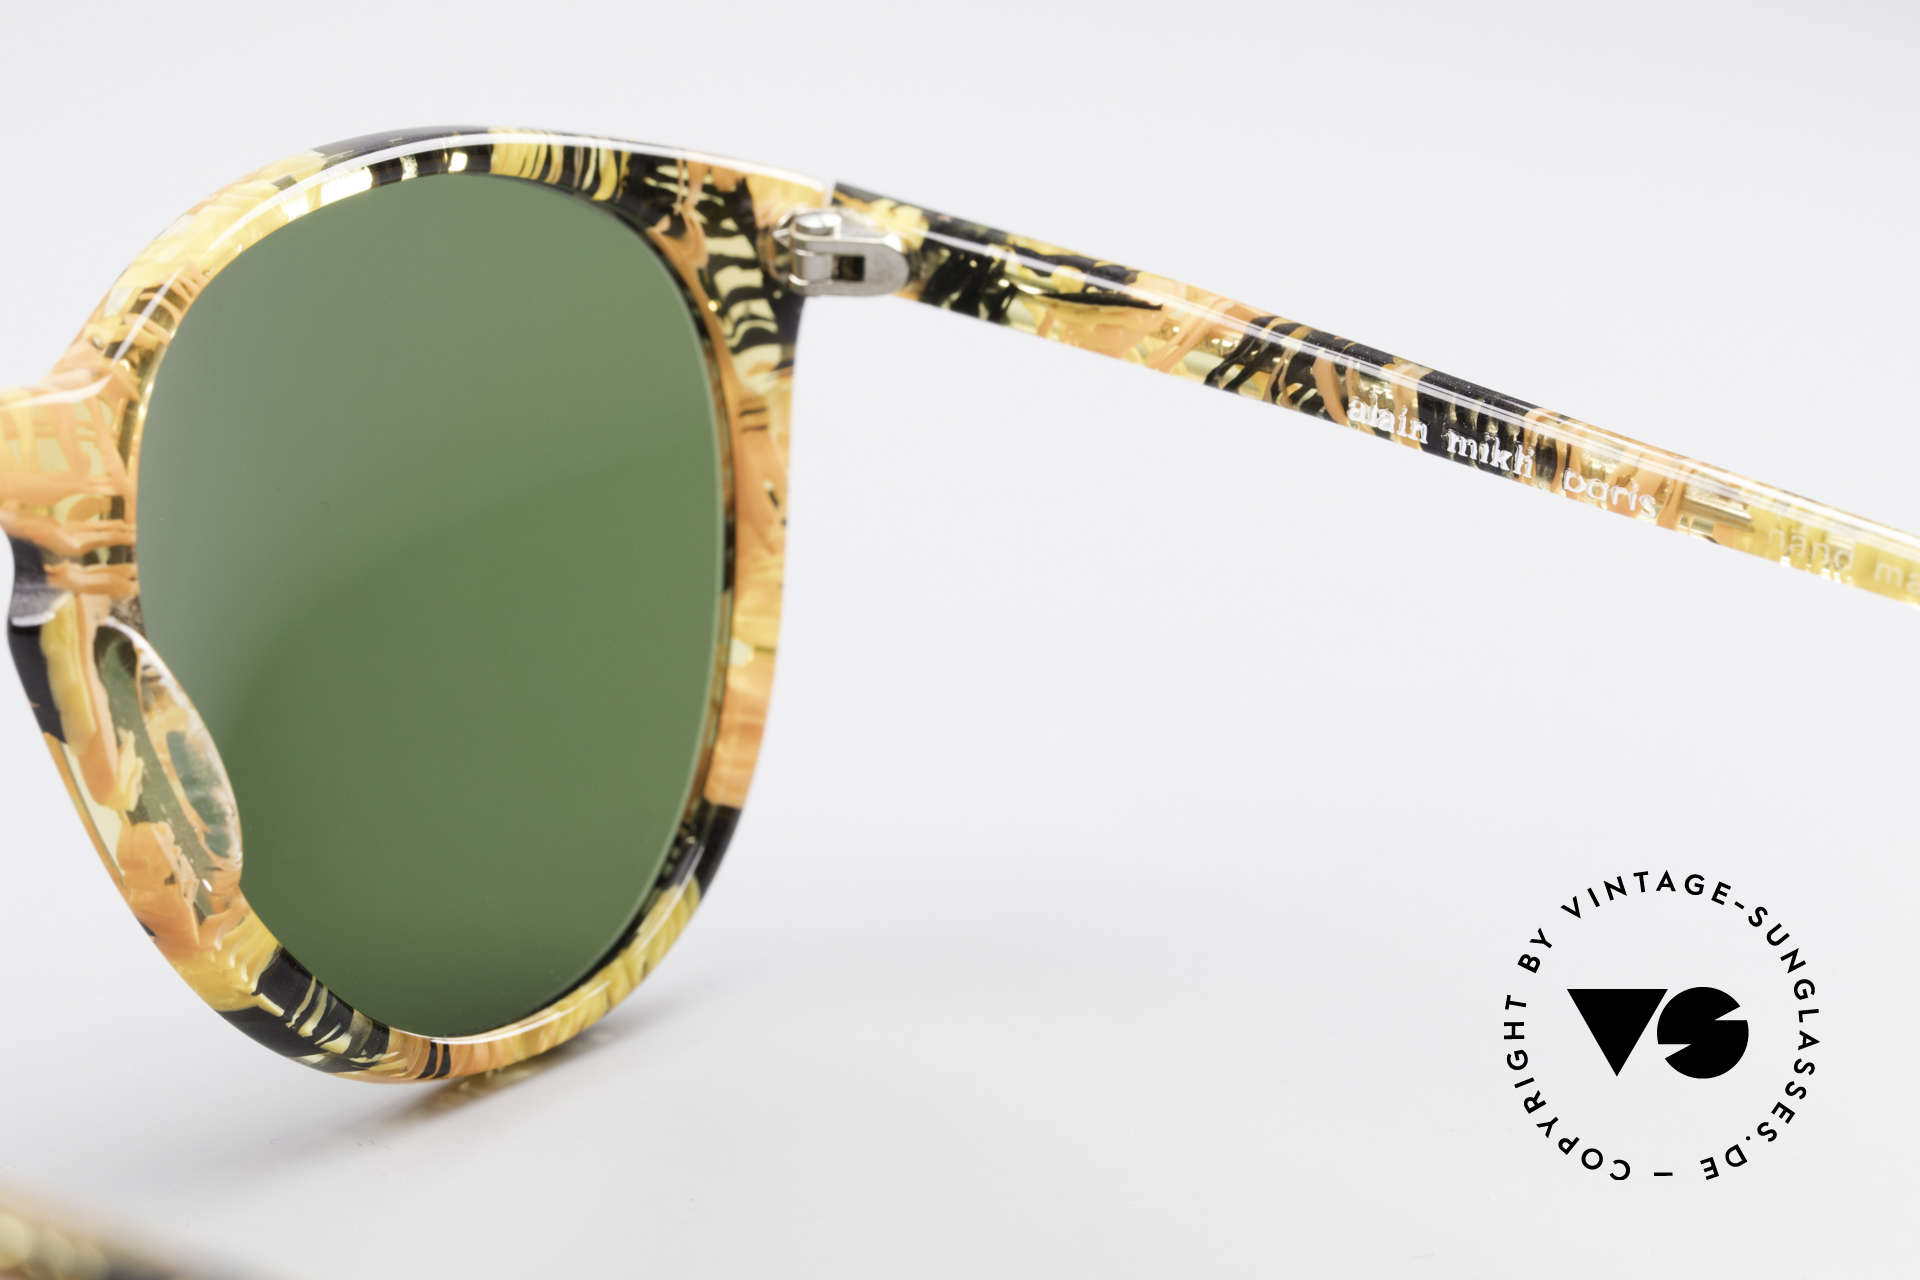 Alain Mikli 901 / 393 Amber Optic Panto Sunglasses, NO RETRO shades, but an old ORIGINAL from 1989, Made for Men and Women